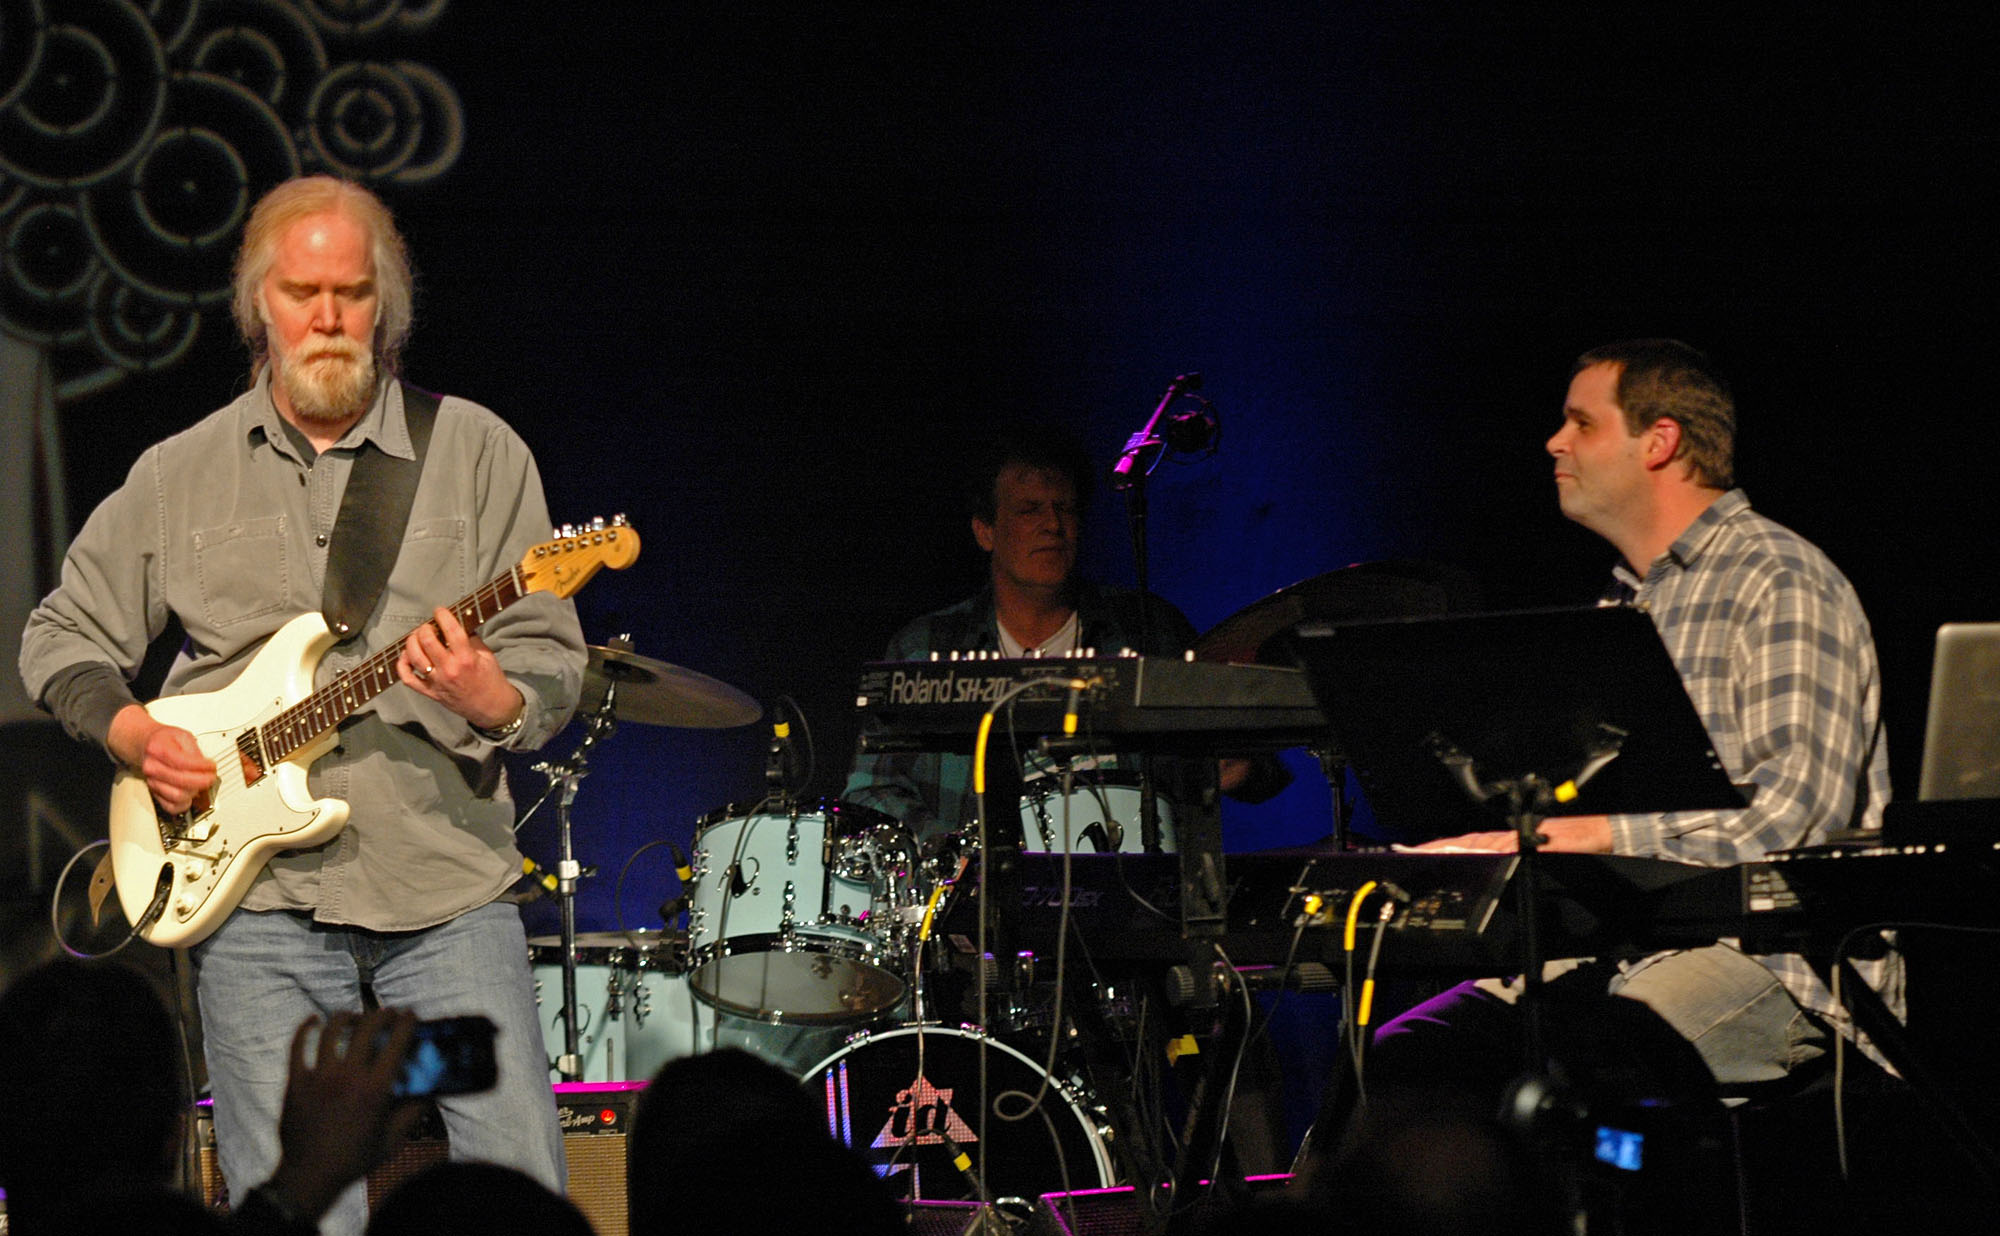 Jimmy Herring, Gary Husband and Matt Slocum, Performing in the John McLaughlin Tribute at the 2010 New Universe Music Festival